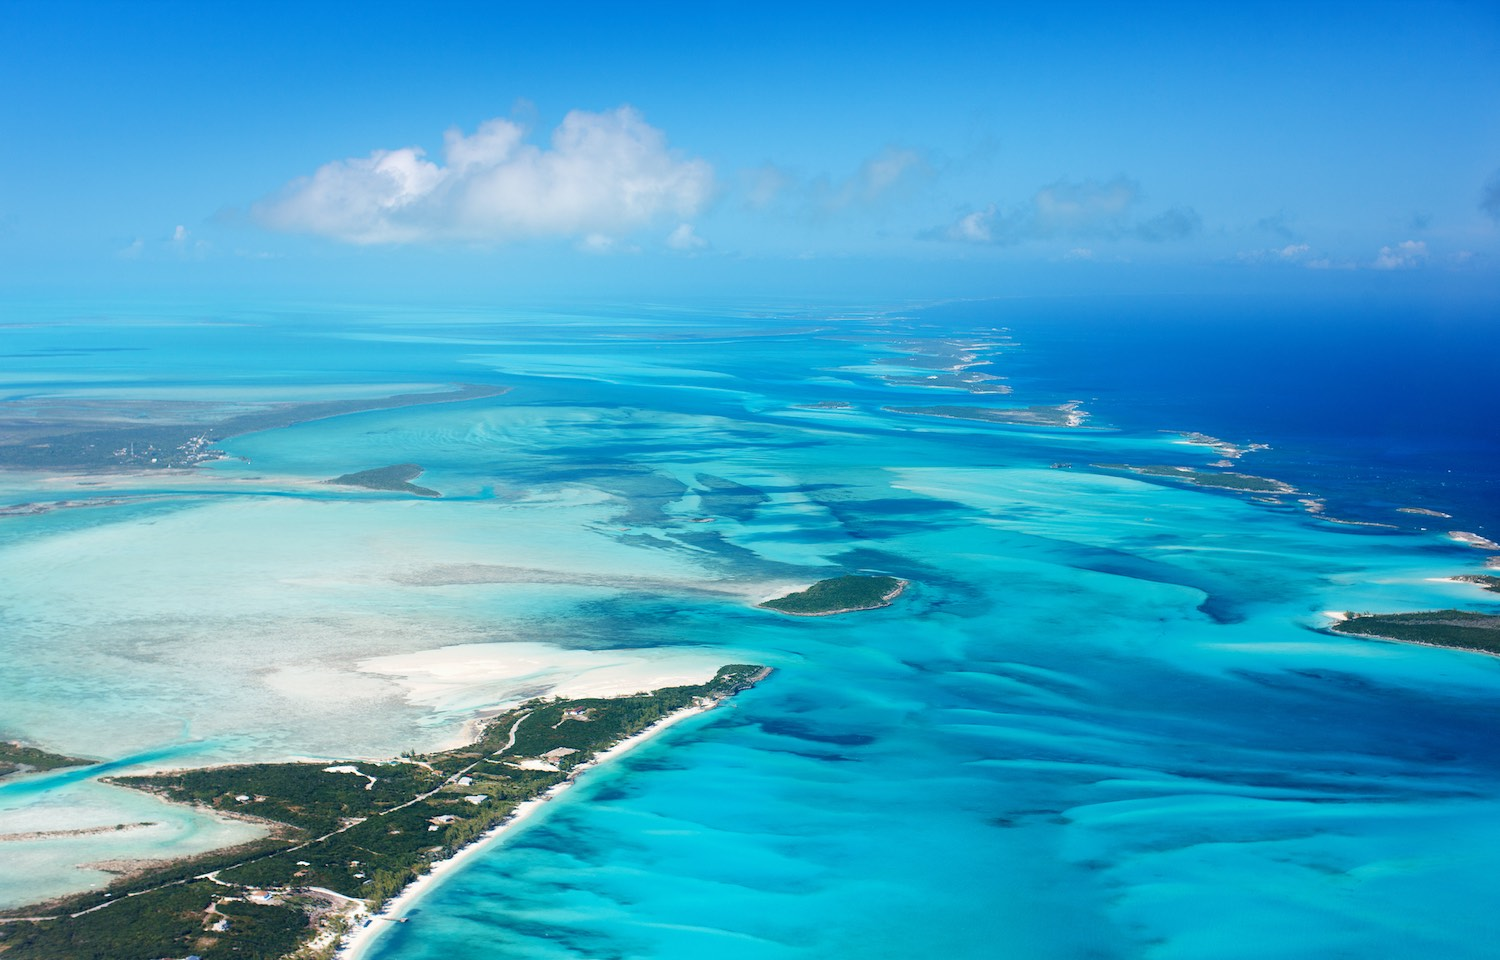 Bahamas - Warm Weather Destinations in February